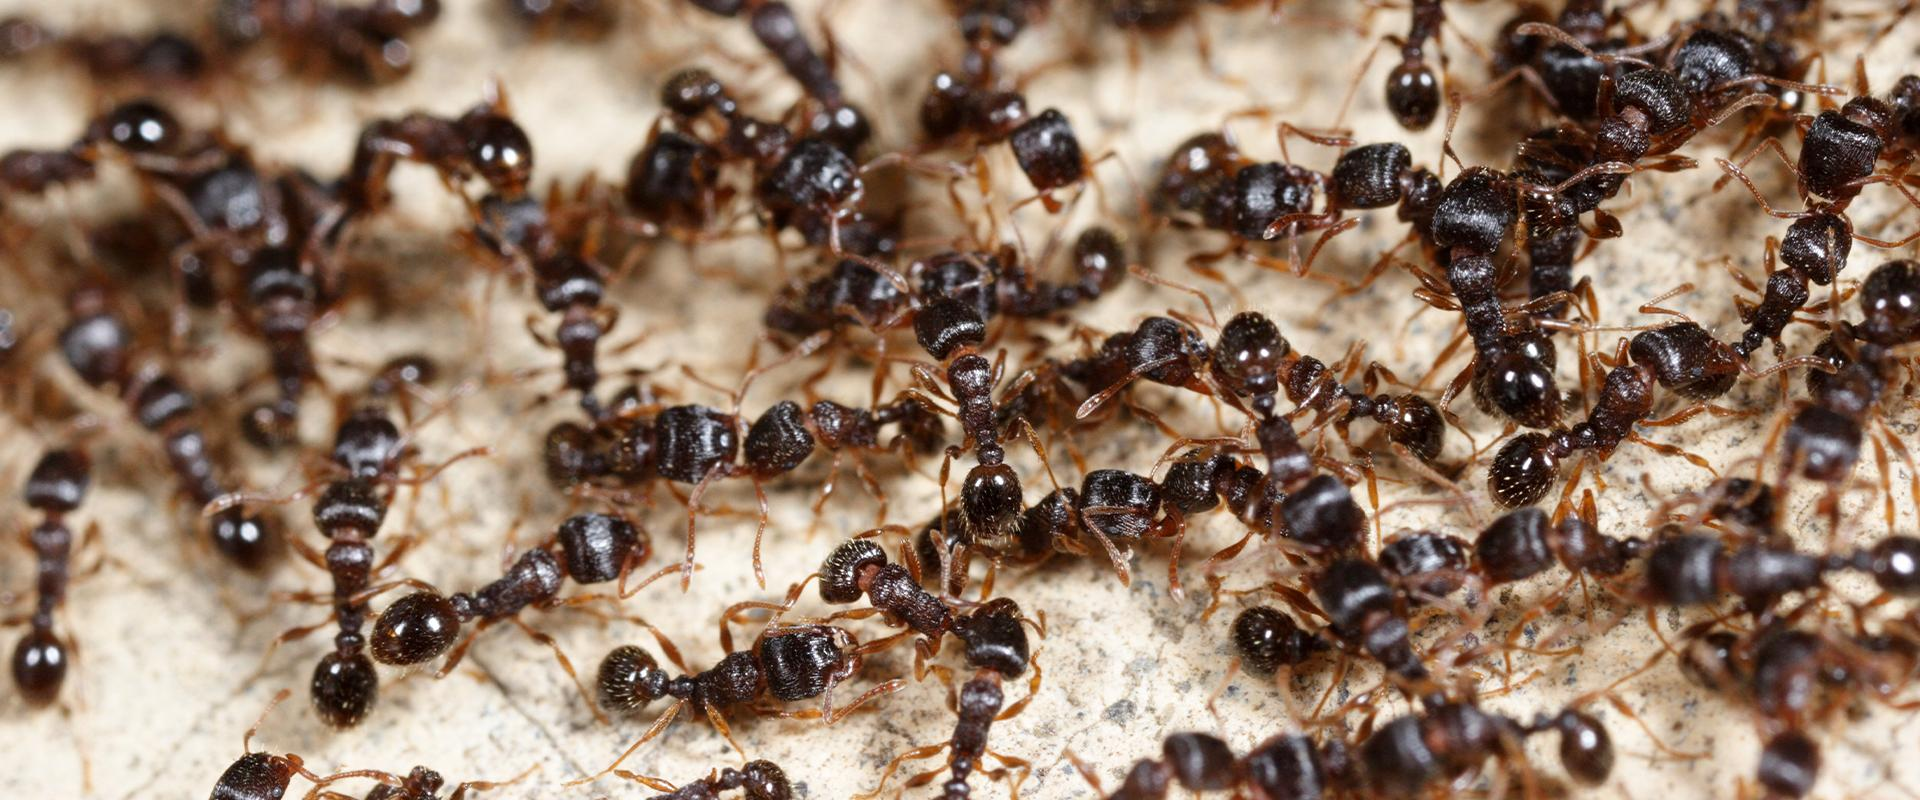 a colony of black ants